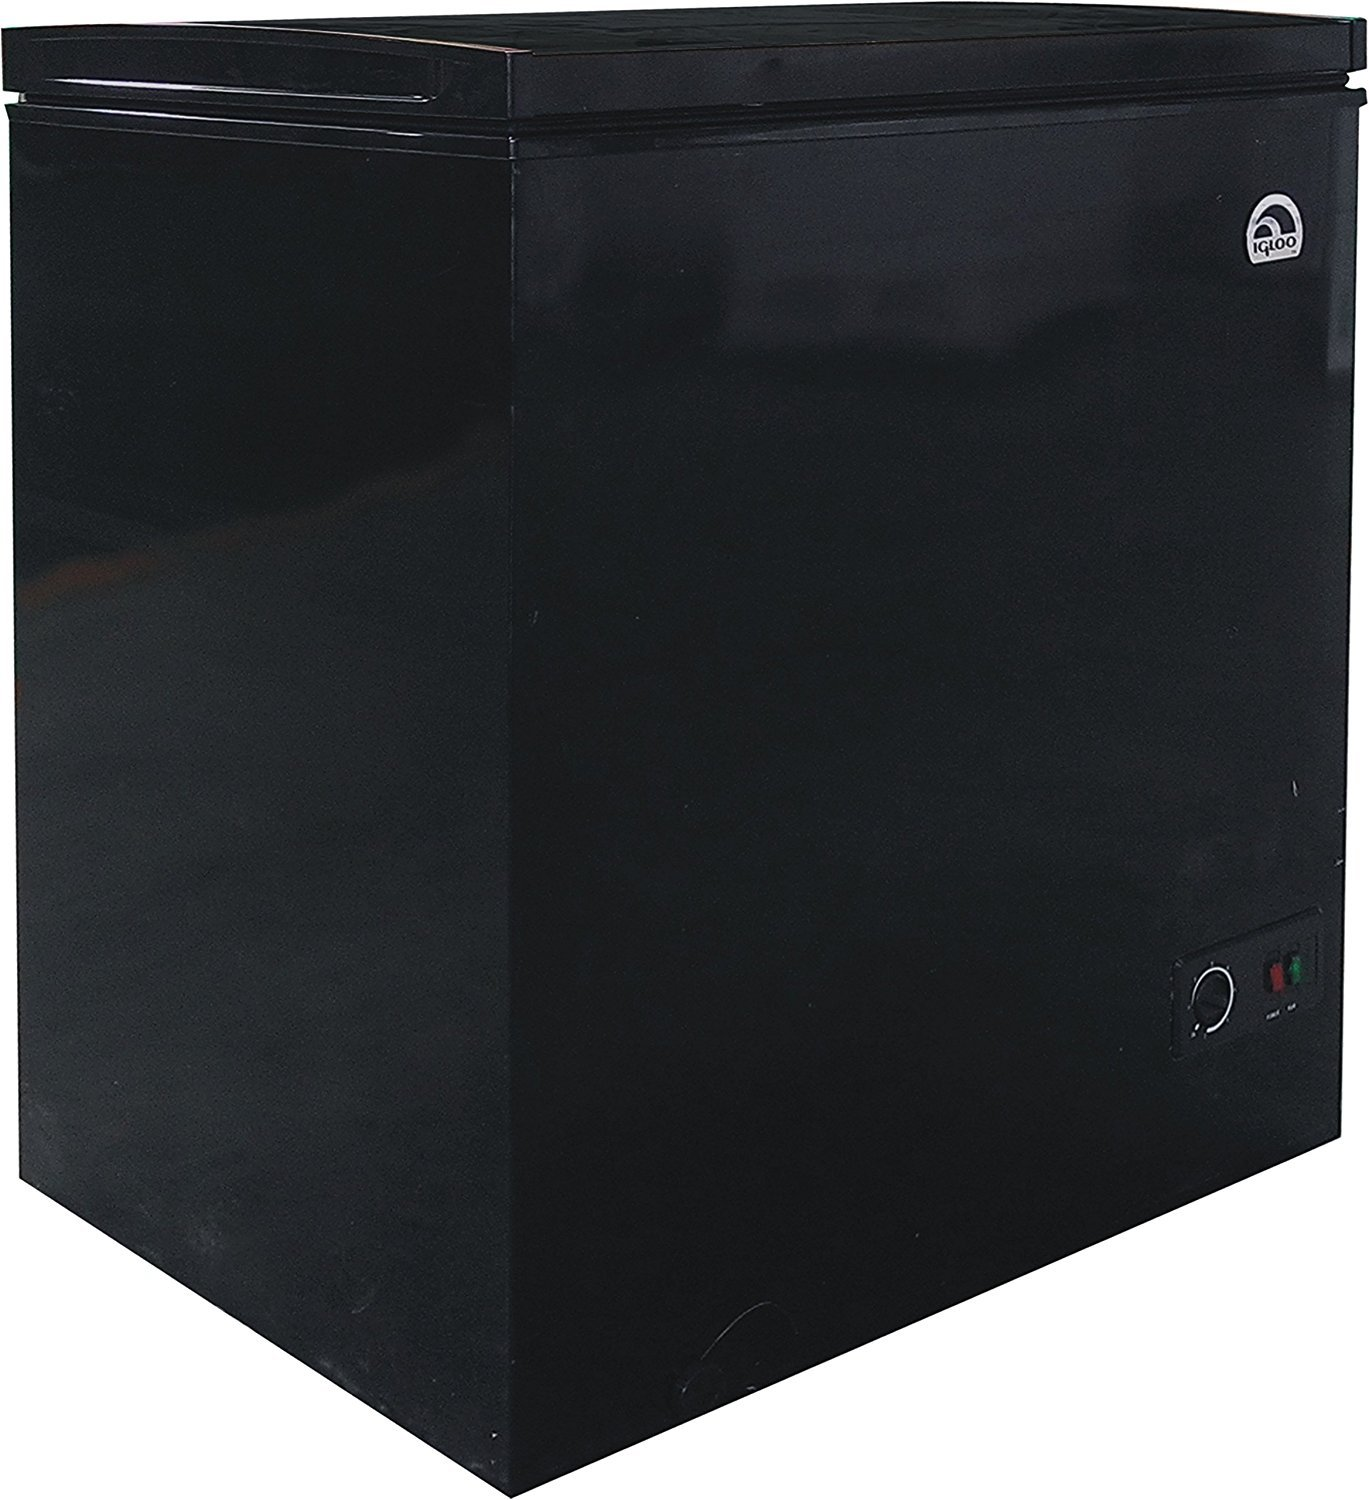 Igloo 5.1 Cubic Foot Chest Freezer with Dry Erase Board Top, Black